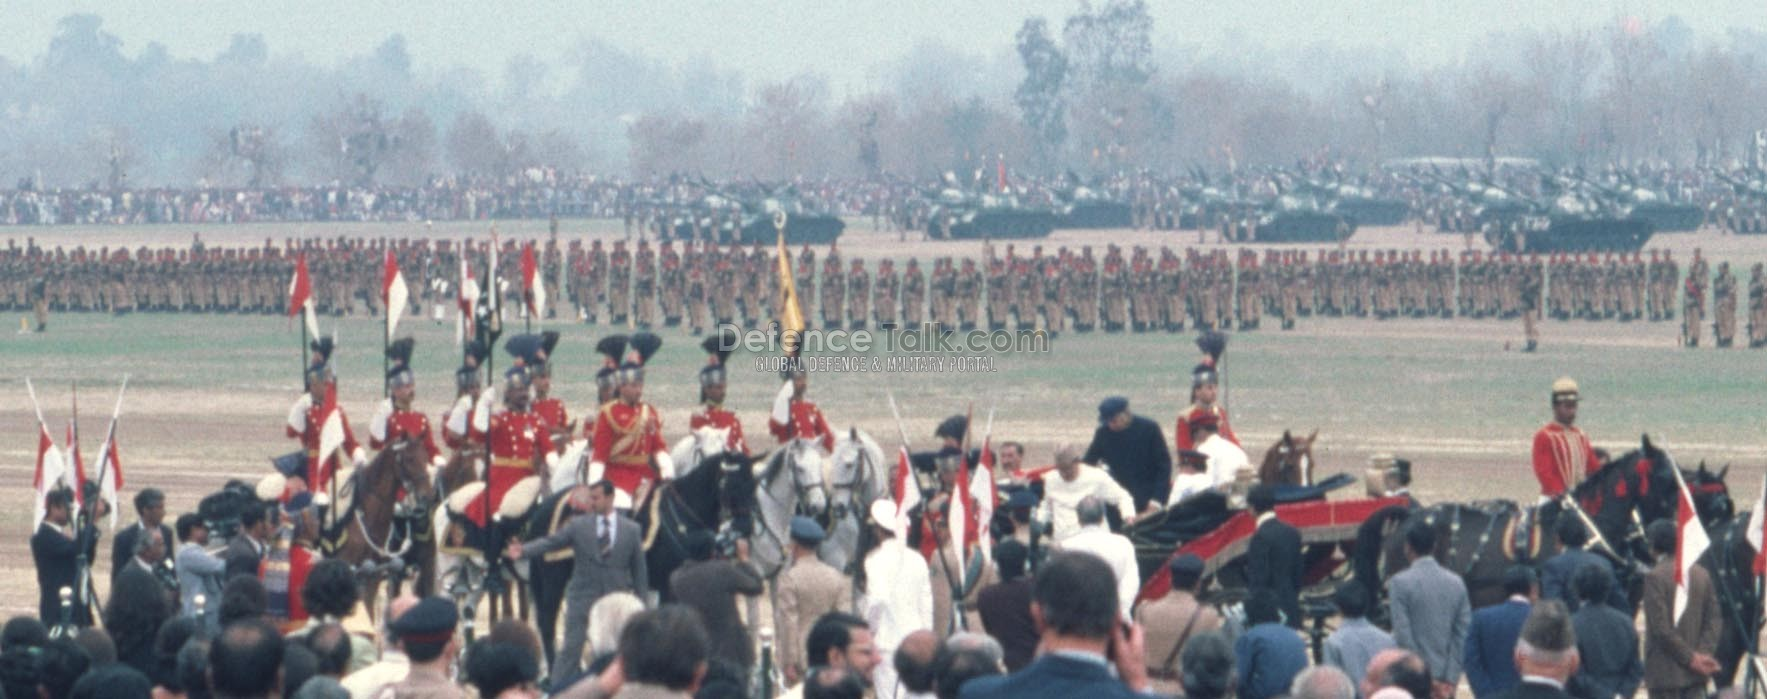 Bhutto Arriving - National Day Parade, March 1976